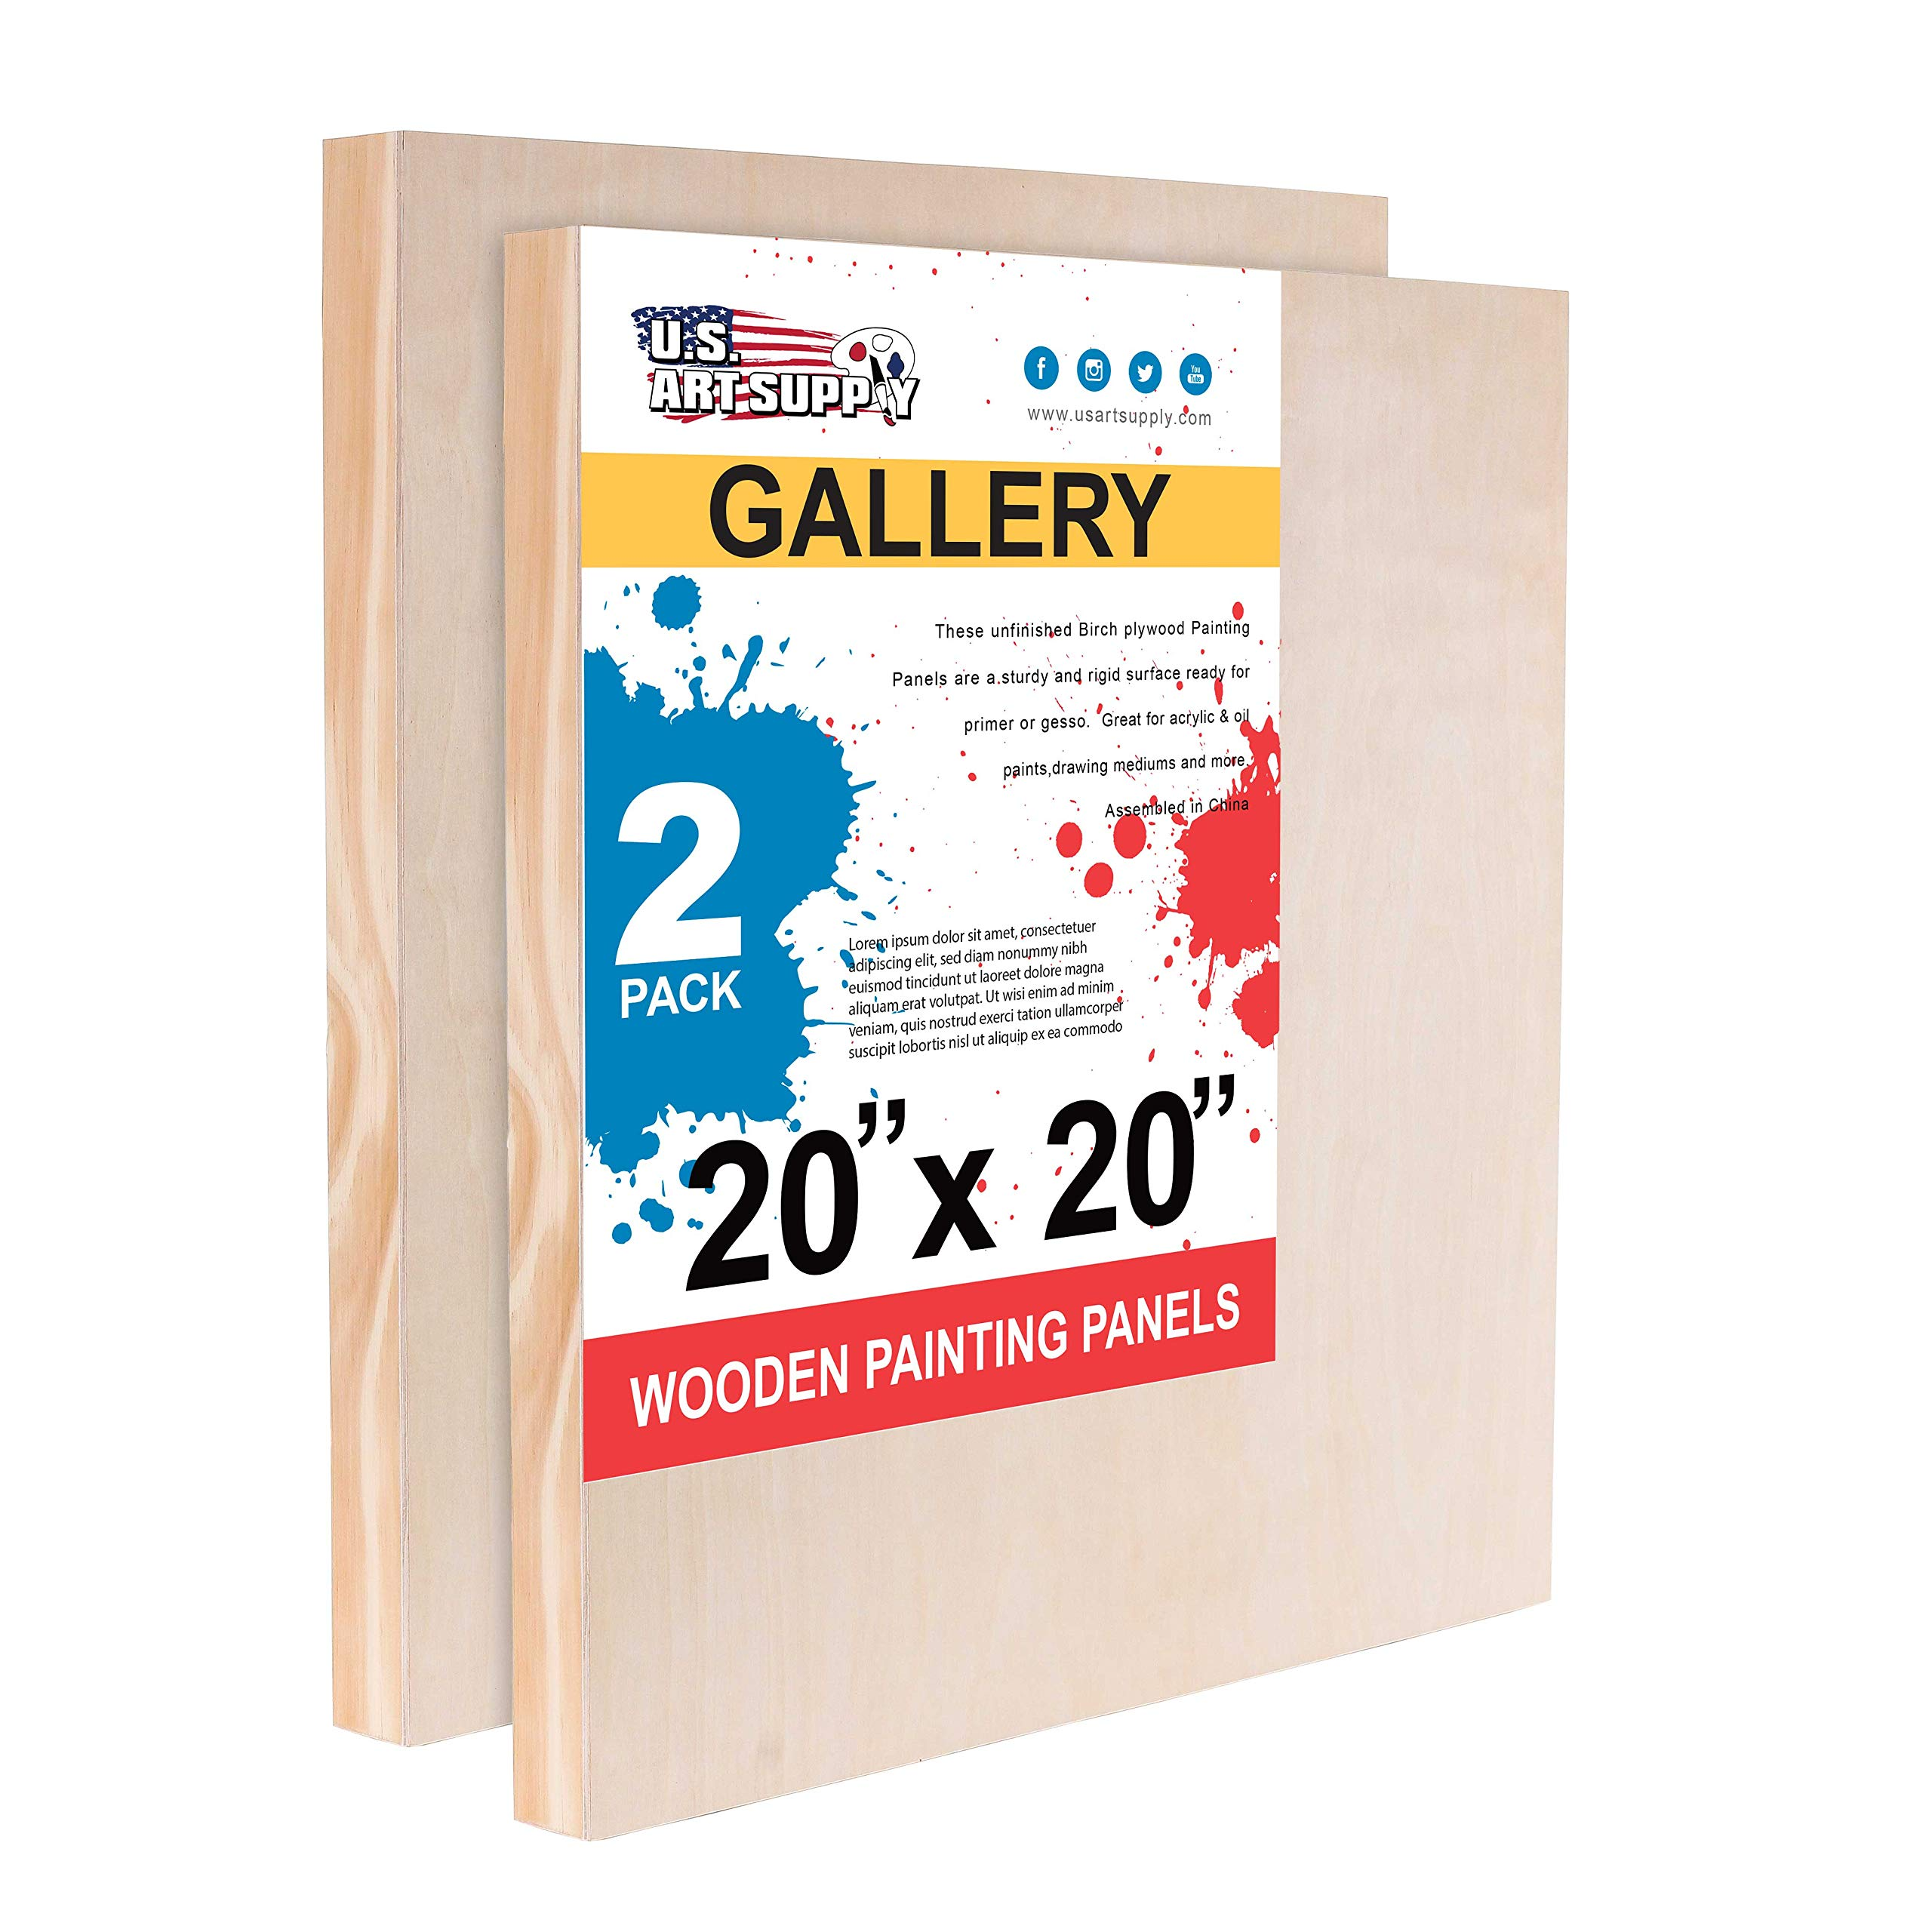 U.S. Art Supply 20'' x 20'' Birch Wood Paint Pouring Panel Boards, Gallery 1-1/2'' Deep Cradle (Pack of 2) - Artist Depth Wooden Wall Canvases - Painting Mixed-Media Craft, Acrylic, Oil, Encaustic by U.S. Art Supply